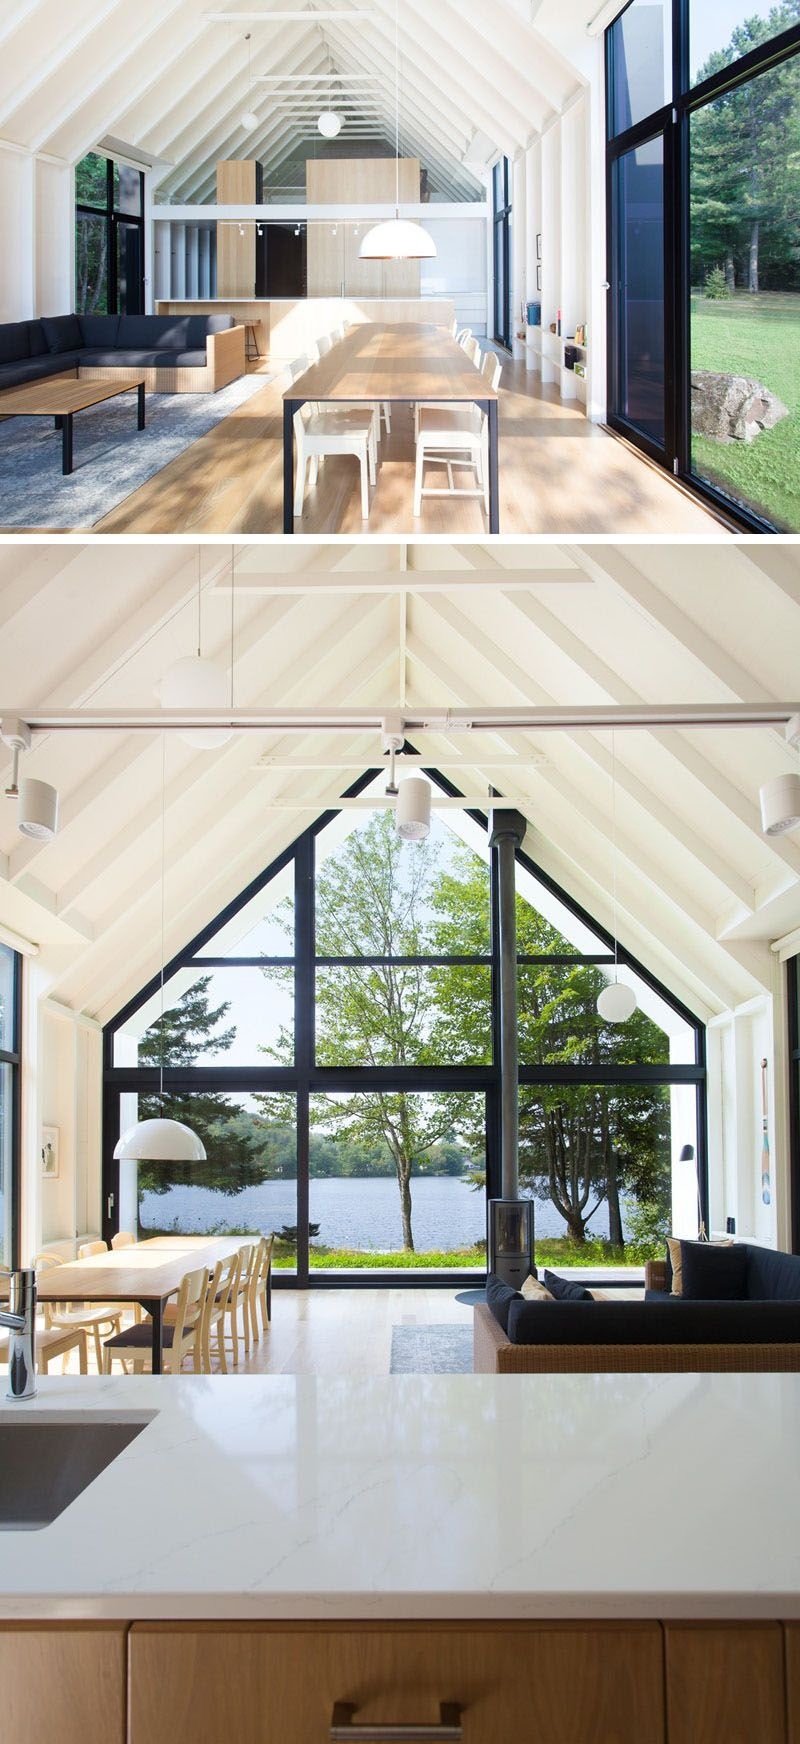 Modern look at the installation and design of small windows